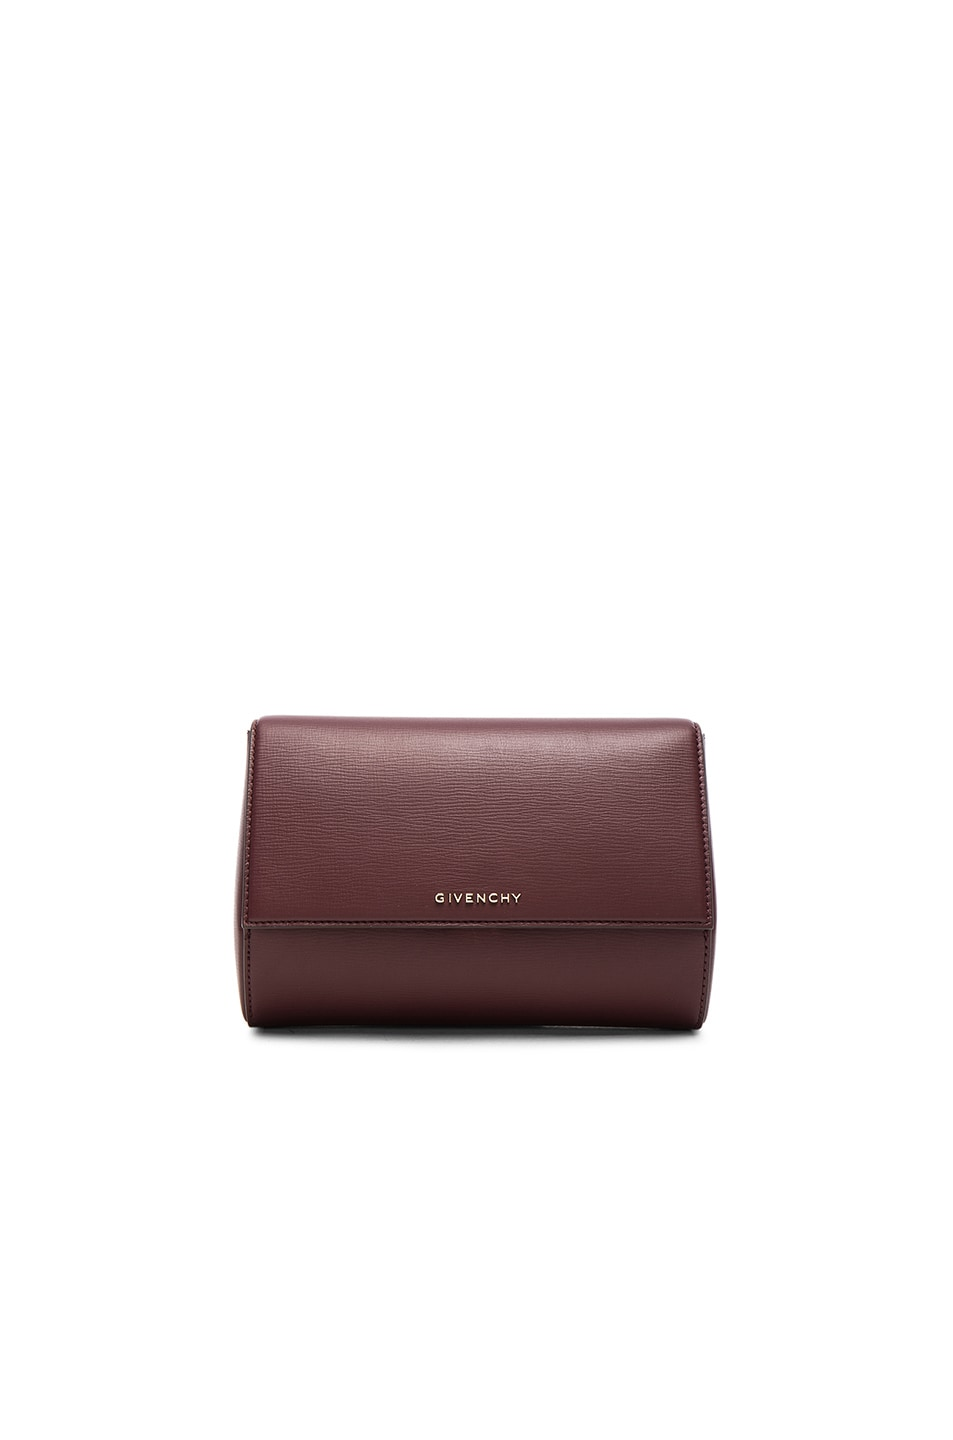 Image 1 of Givenchy Pandora Box Clutch in Oxblood